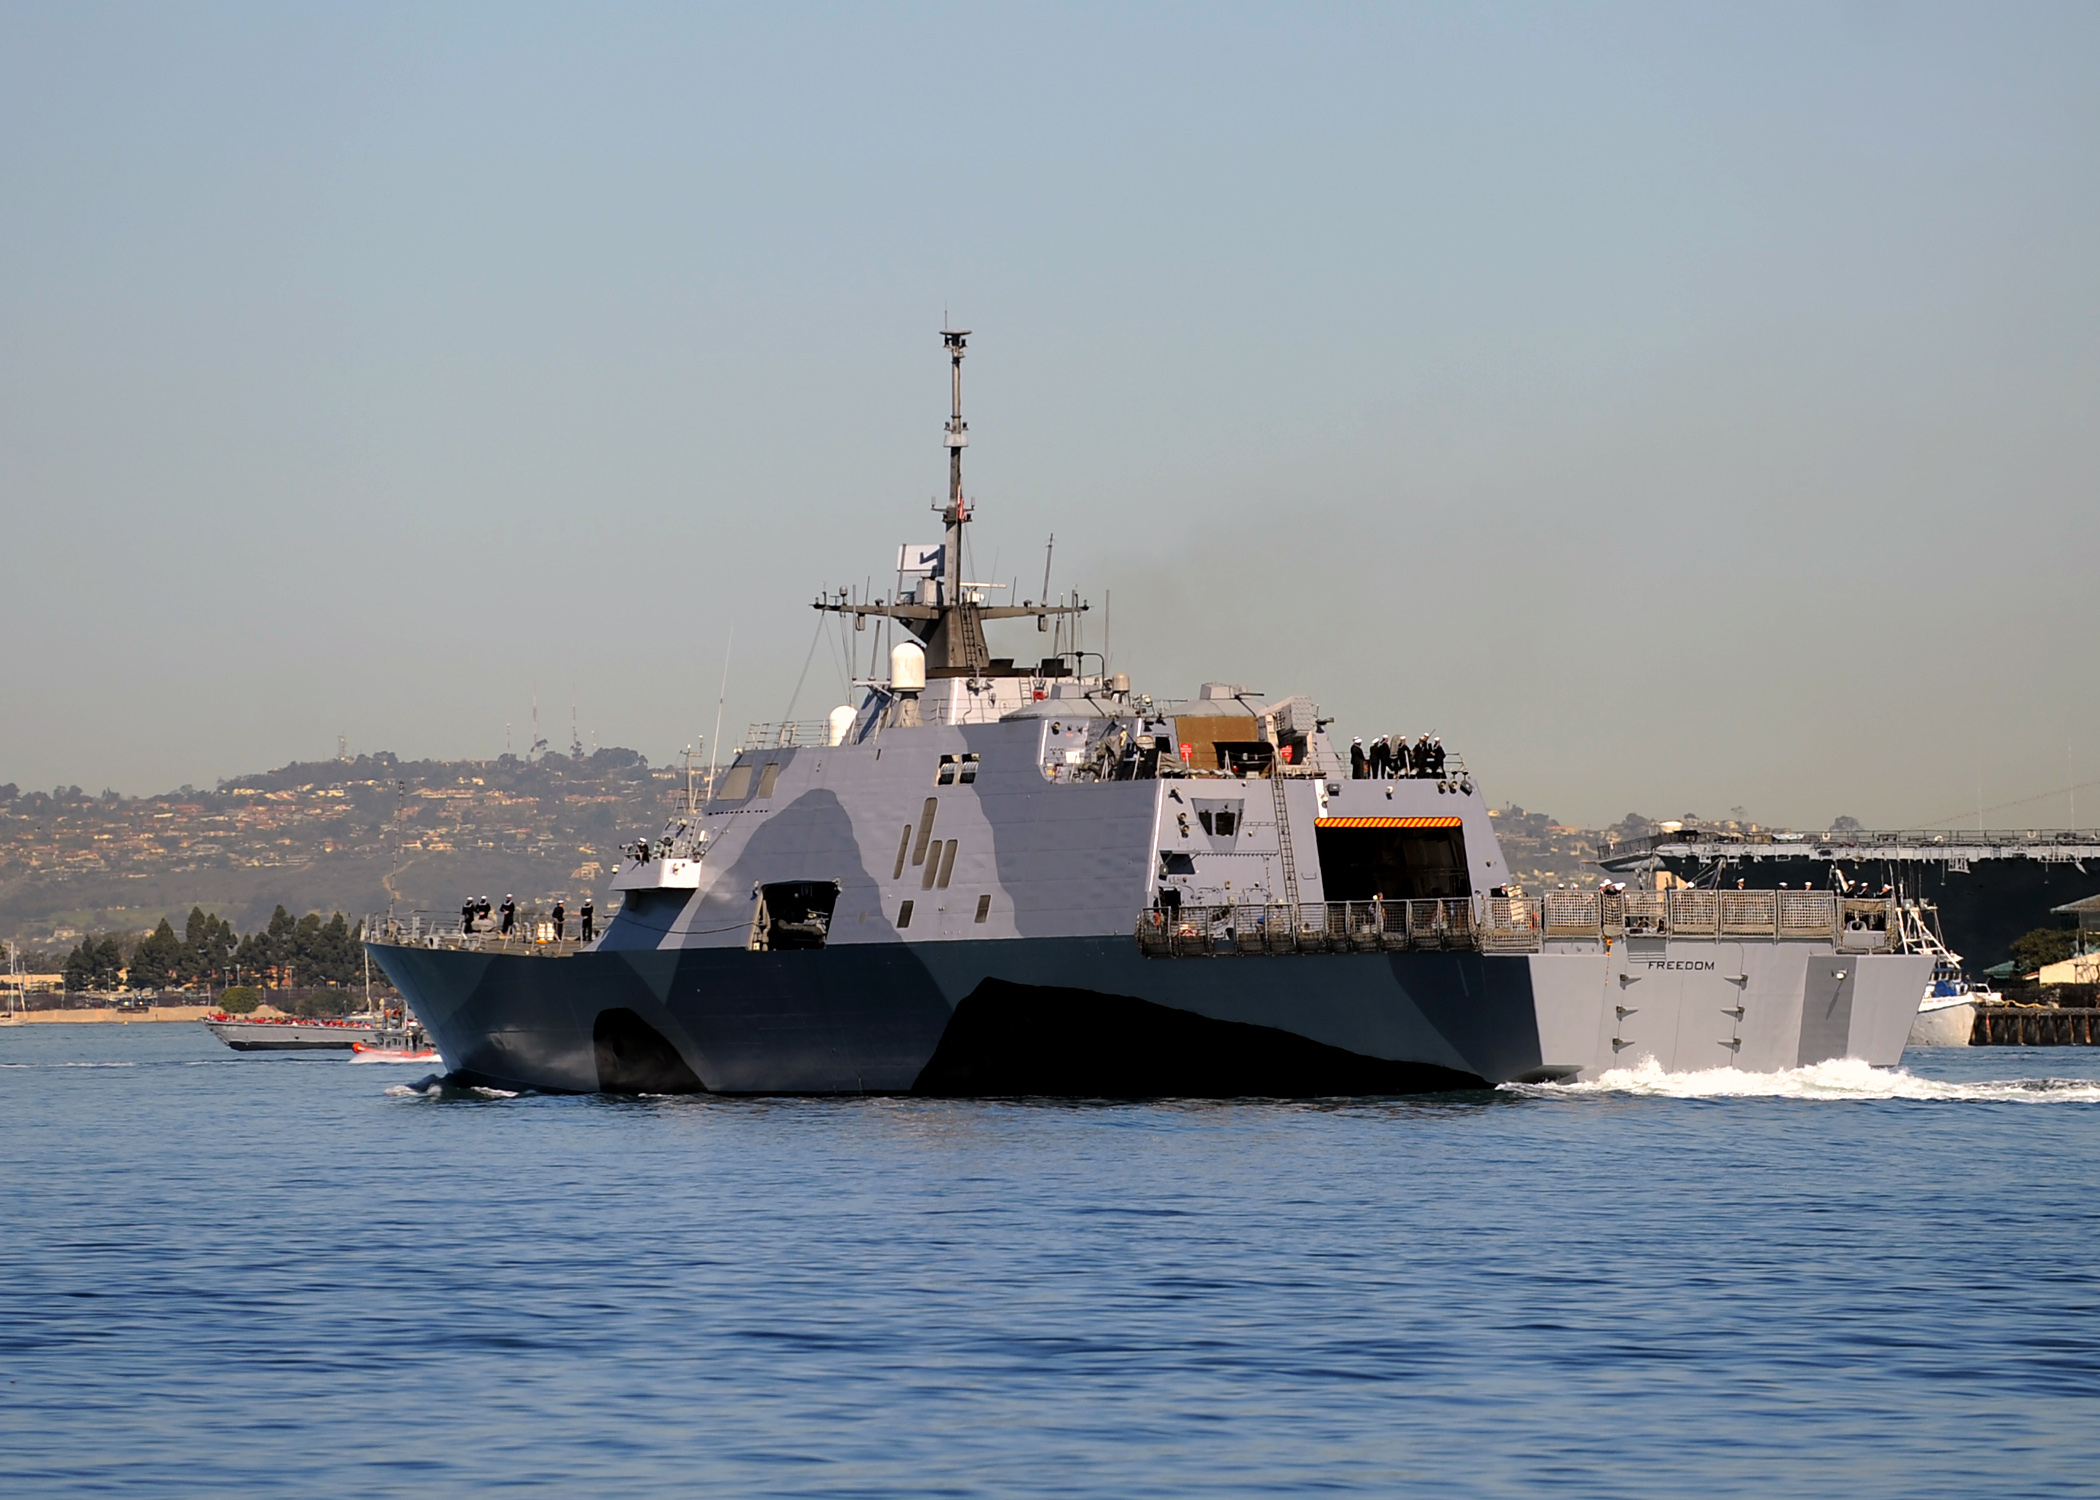 First lcs deployment bremerton olympic peninsula council navy league of the us - Uss freedom lcs 1 photos ...